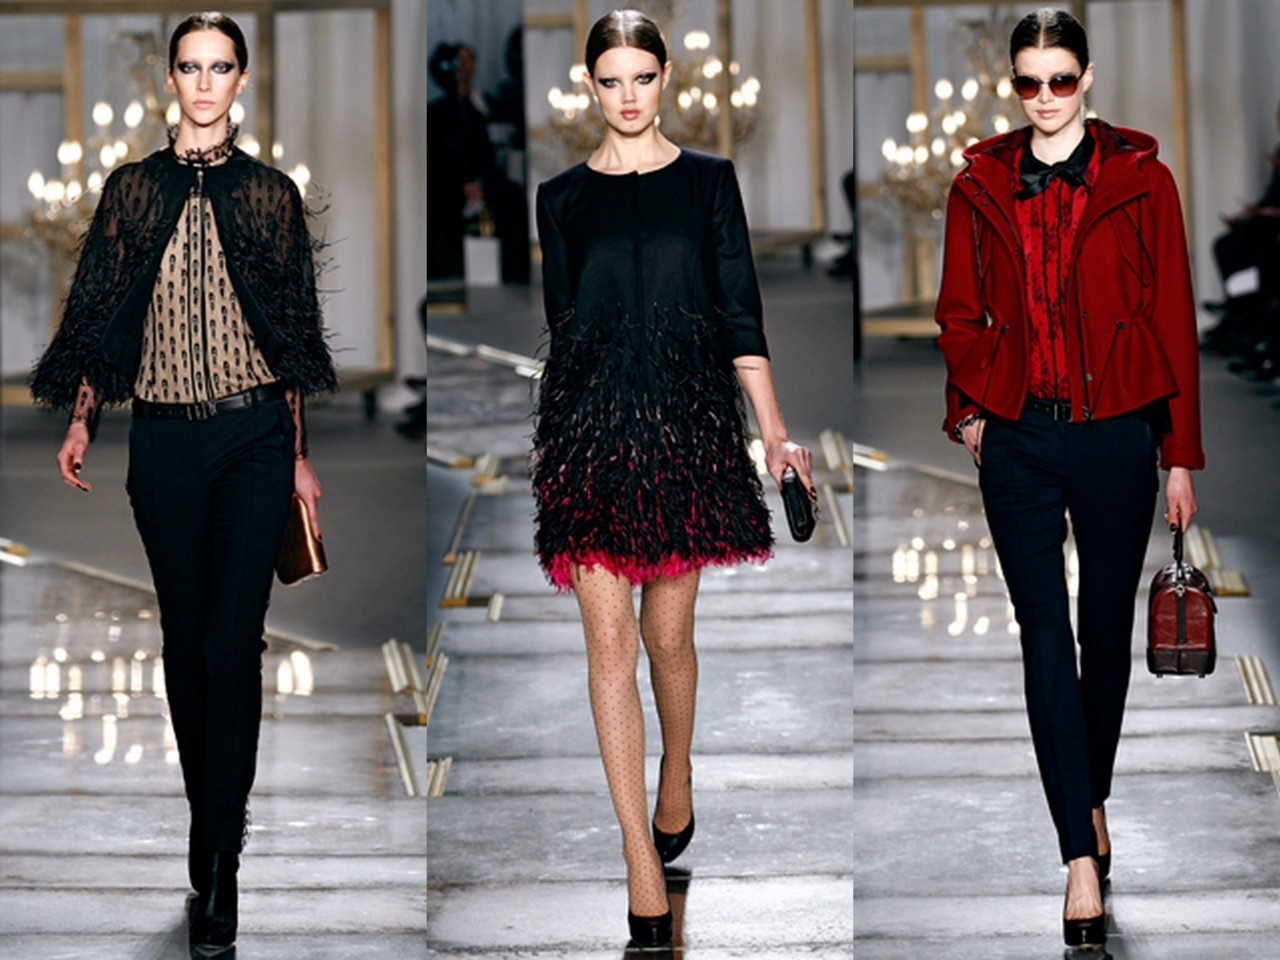 "Jason Wu Fall 2011/2012 Tailoring plays a large role in Jason Wu's collection. Not surprisingly, it played a large role in his collection for fall. But what sets this utilization of technique and skill apart from the other instances is the fact that this time tailoring served as a champion for the idea behind the clothes; that is, the precise, exquisite tailoring served to reinforce the idea of simple yet ""baroque"" sportswear. That type of balanced aesthetic runs throughout this feminine, yet austere collection. As for the baroque, an ambitious Jason Wu took many of the pieces to the precipice of bombast. Elegant paillettes were meticulously applied to an even more elegant canvas of gilded lace to create the dress worn by Joan Smalls; ombré-esque feathers were applied to the silken dress on Lindsay Wixon; the feathers also found presence on the sheer cardigan worn by Alana Zimmer. The baroque idea even touched the smaller details; instead of leaving a gray coat in an otherwise minimalist state, Wu decided to apply a small strip of black lace down the sleeve. A fitting touch. However, never failing to fulfill a minimalist tendency, Wu put these baroque elements on the backdrop of some equally simplistic elements. Alana Zimmer's sheer, feather embroidered cardigan was intelligently paired with sporty, sleek pants, while the red blouse ensemble on Julia Saner (shown right) was anchored by a practical red jacket. Even the impressive dress on Joan Smalls was done in a simple, form-fitting silhouette. Such smart, elegant balance is hard for some older designers to attain; such harmonious swing between the baroque and the practical is not something that everyone can do. If anything is indicative of Jason Wu's talent, it is certainly his mastery of this relationship between the two aesthetic opposites. That being said, it may not be most prudent to conclude that Wu is the emperor of 21st century American fashion, but somethings about this excellent, young designers are true. One of those is that he is certainly rising in the ranks."